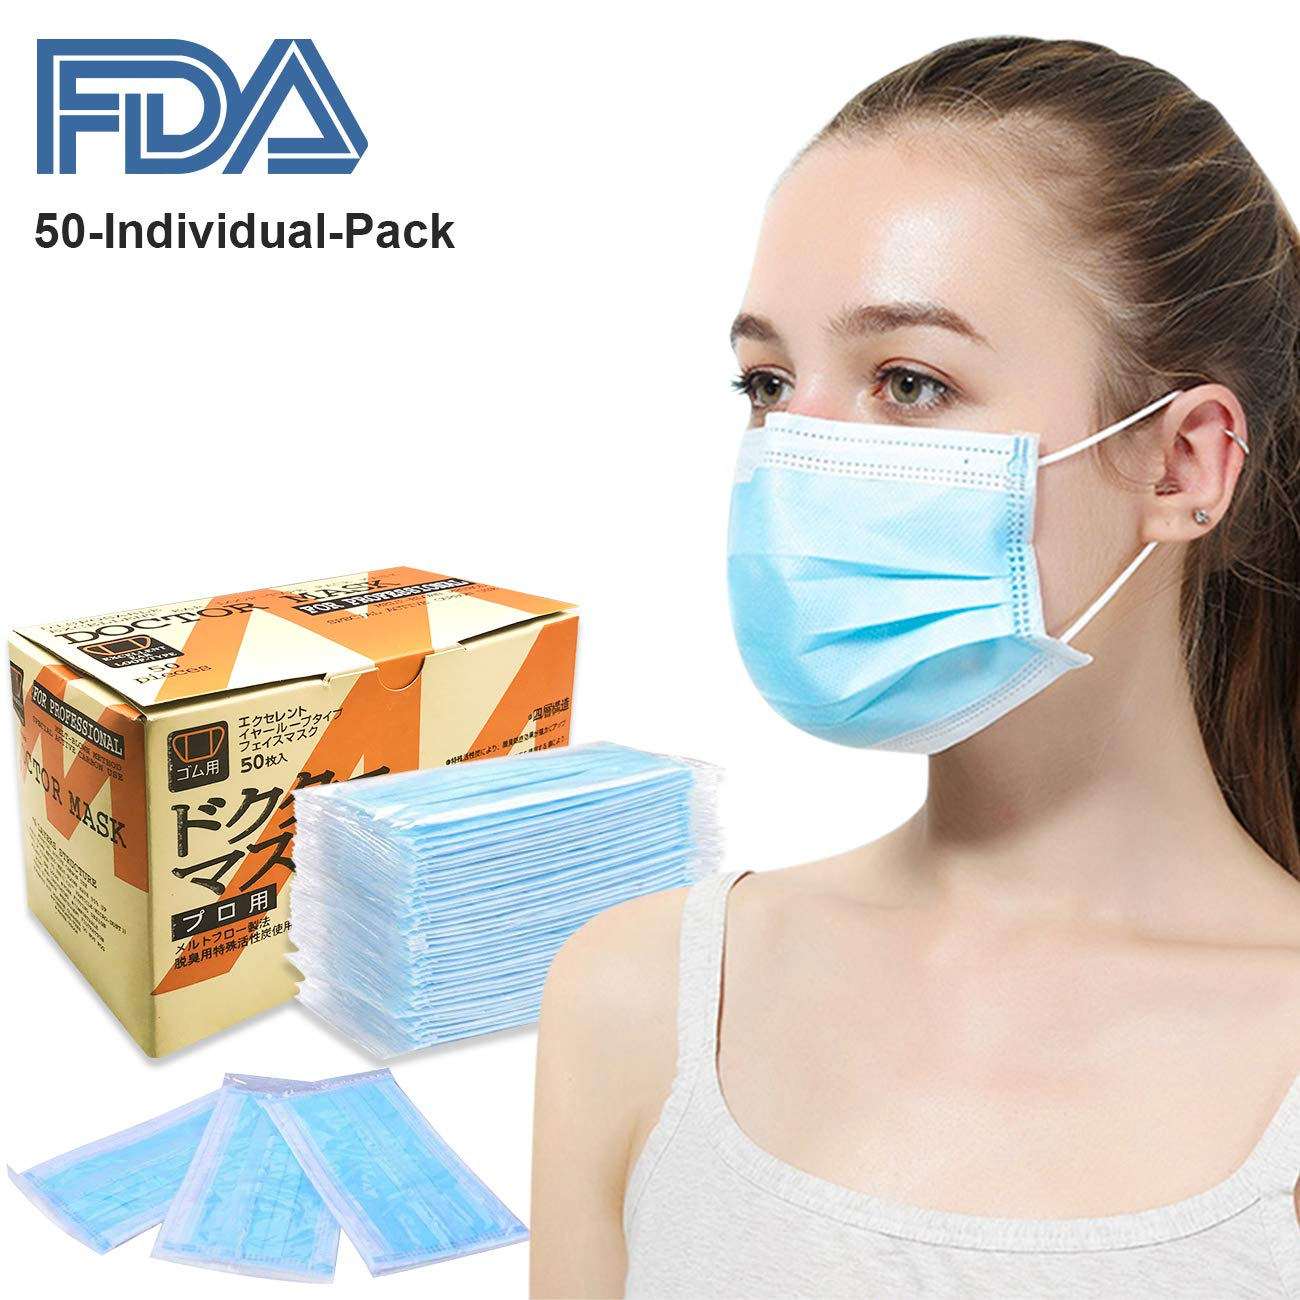 amd disposable mask